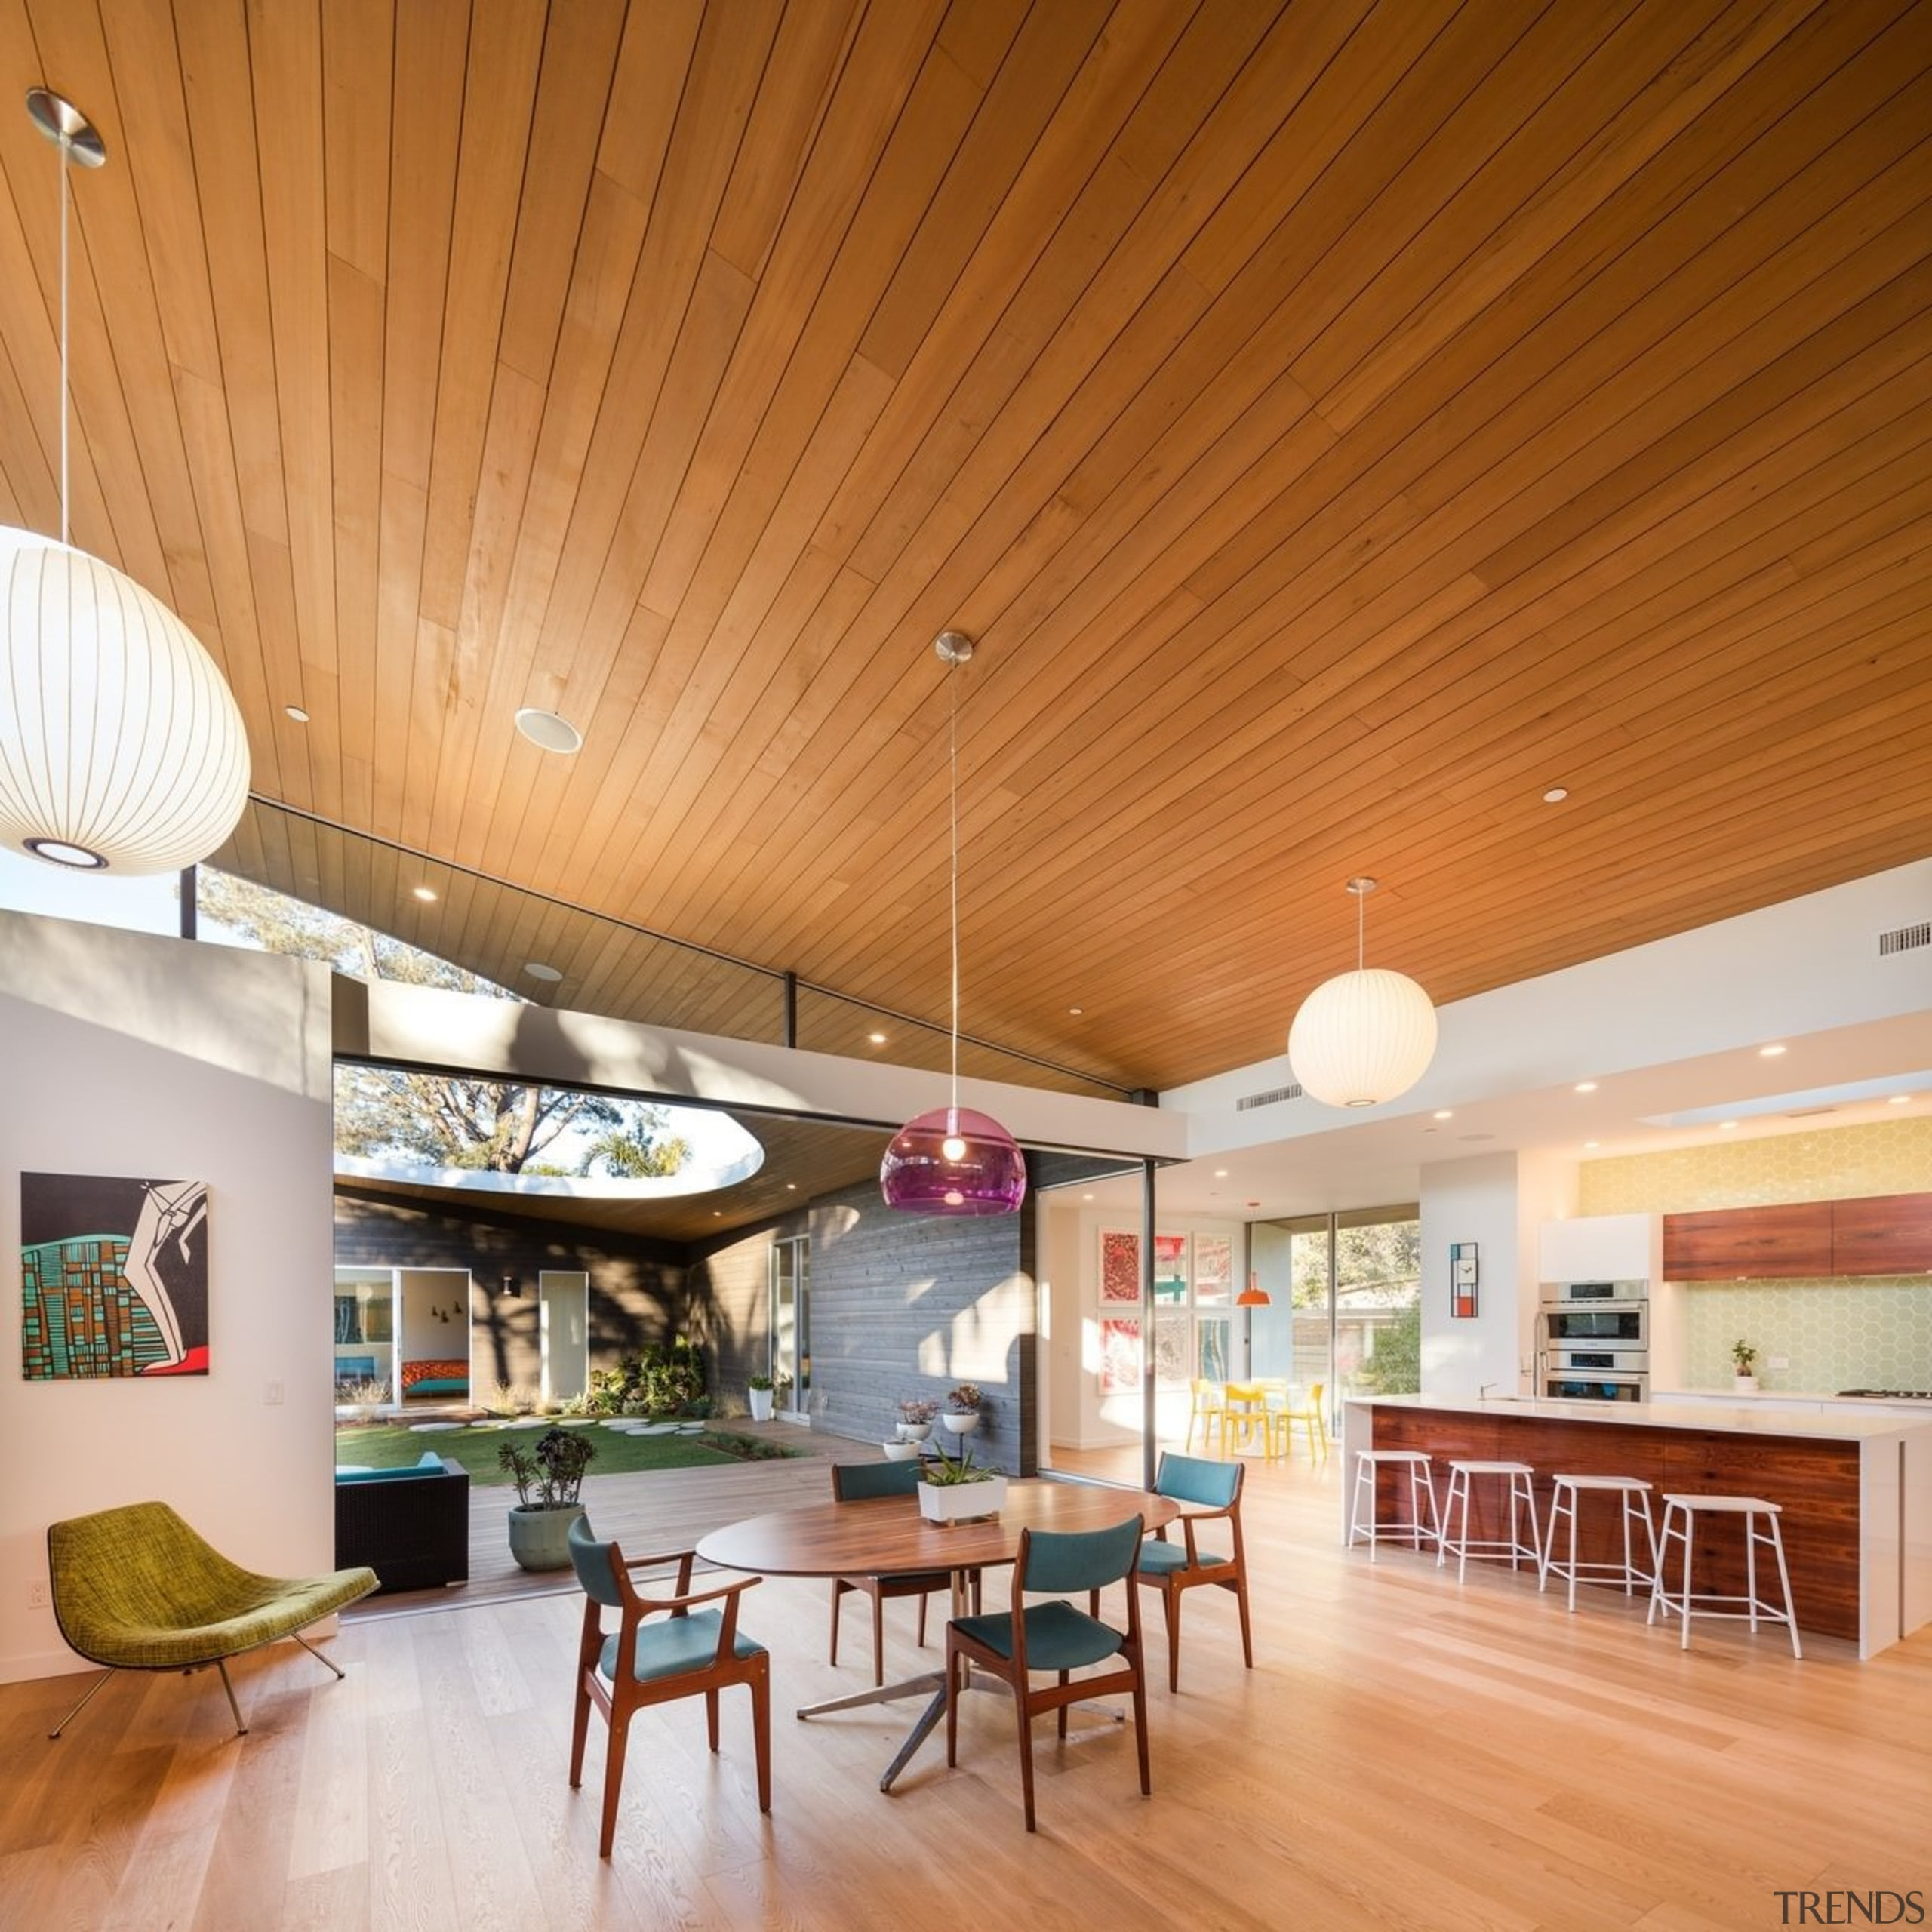 Architect: lloyd russell, aiaPhotography by Darren Bradley architecture, ceiling, daylighting, interior design, living room, lobby, real estate, wood, orange, brown